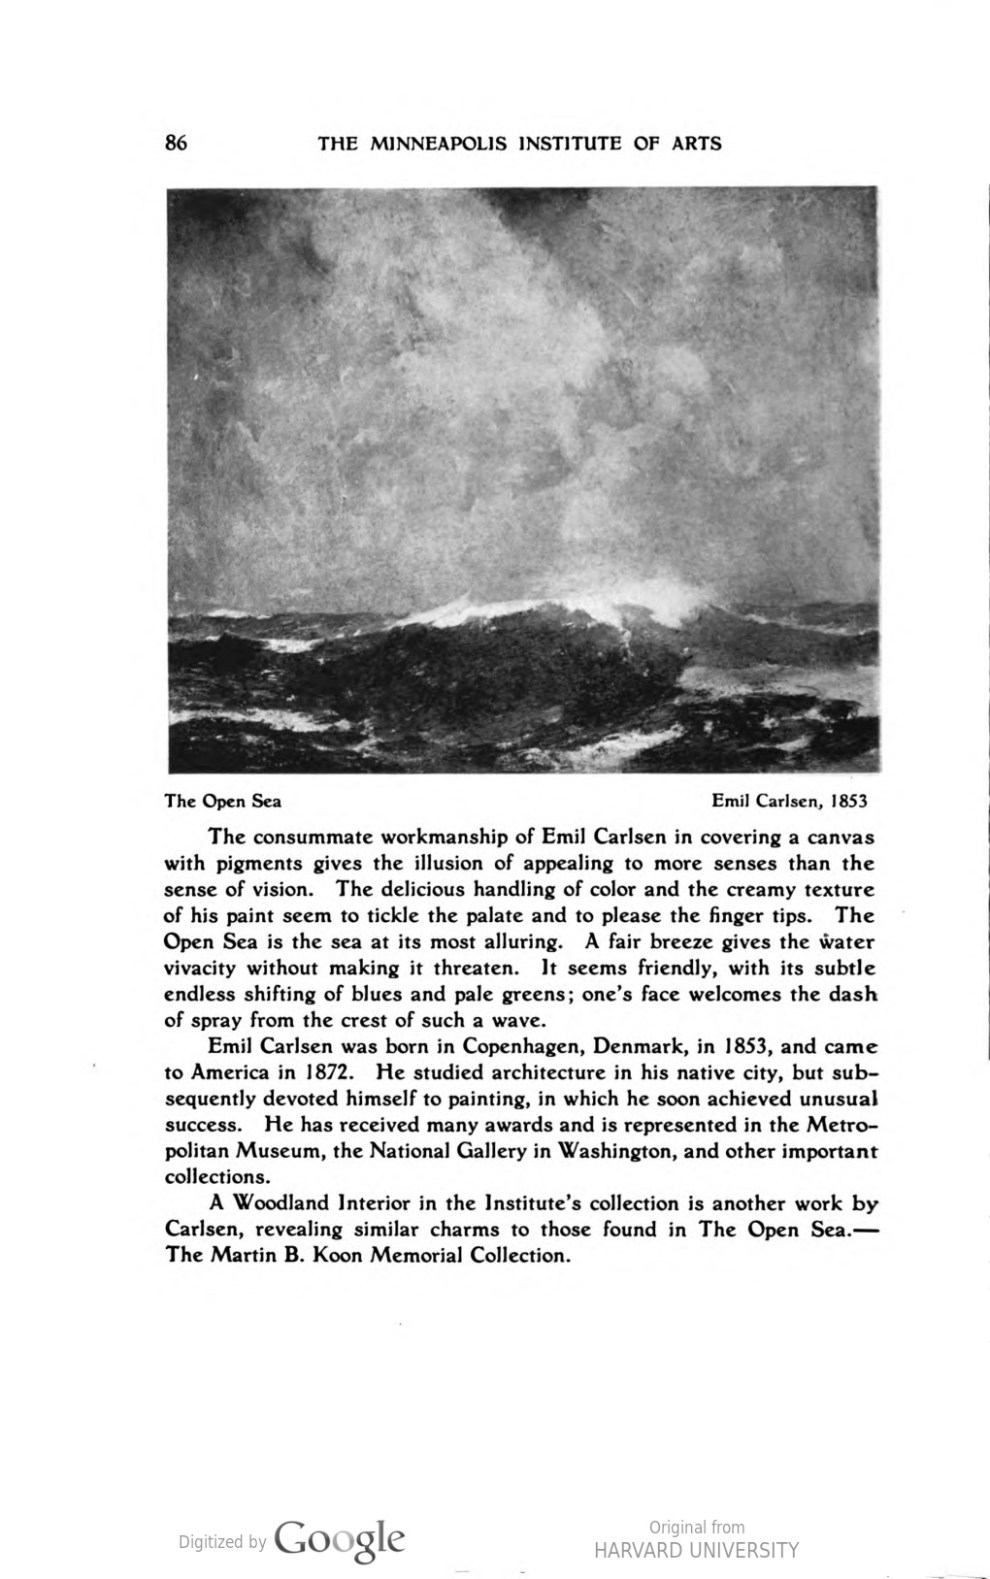 Handbook of the Minneapolis Institute of Arts by the Minneapolis Institute of Art, 1917, illustrated: b&w on page 86